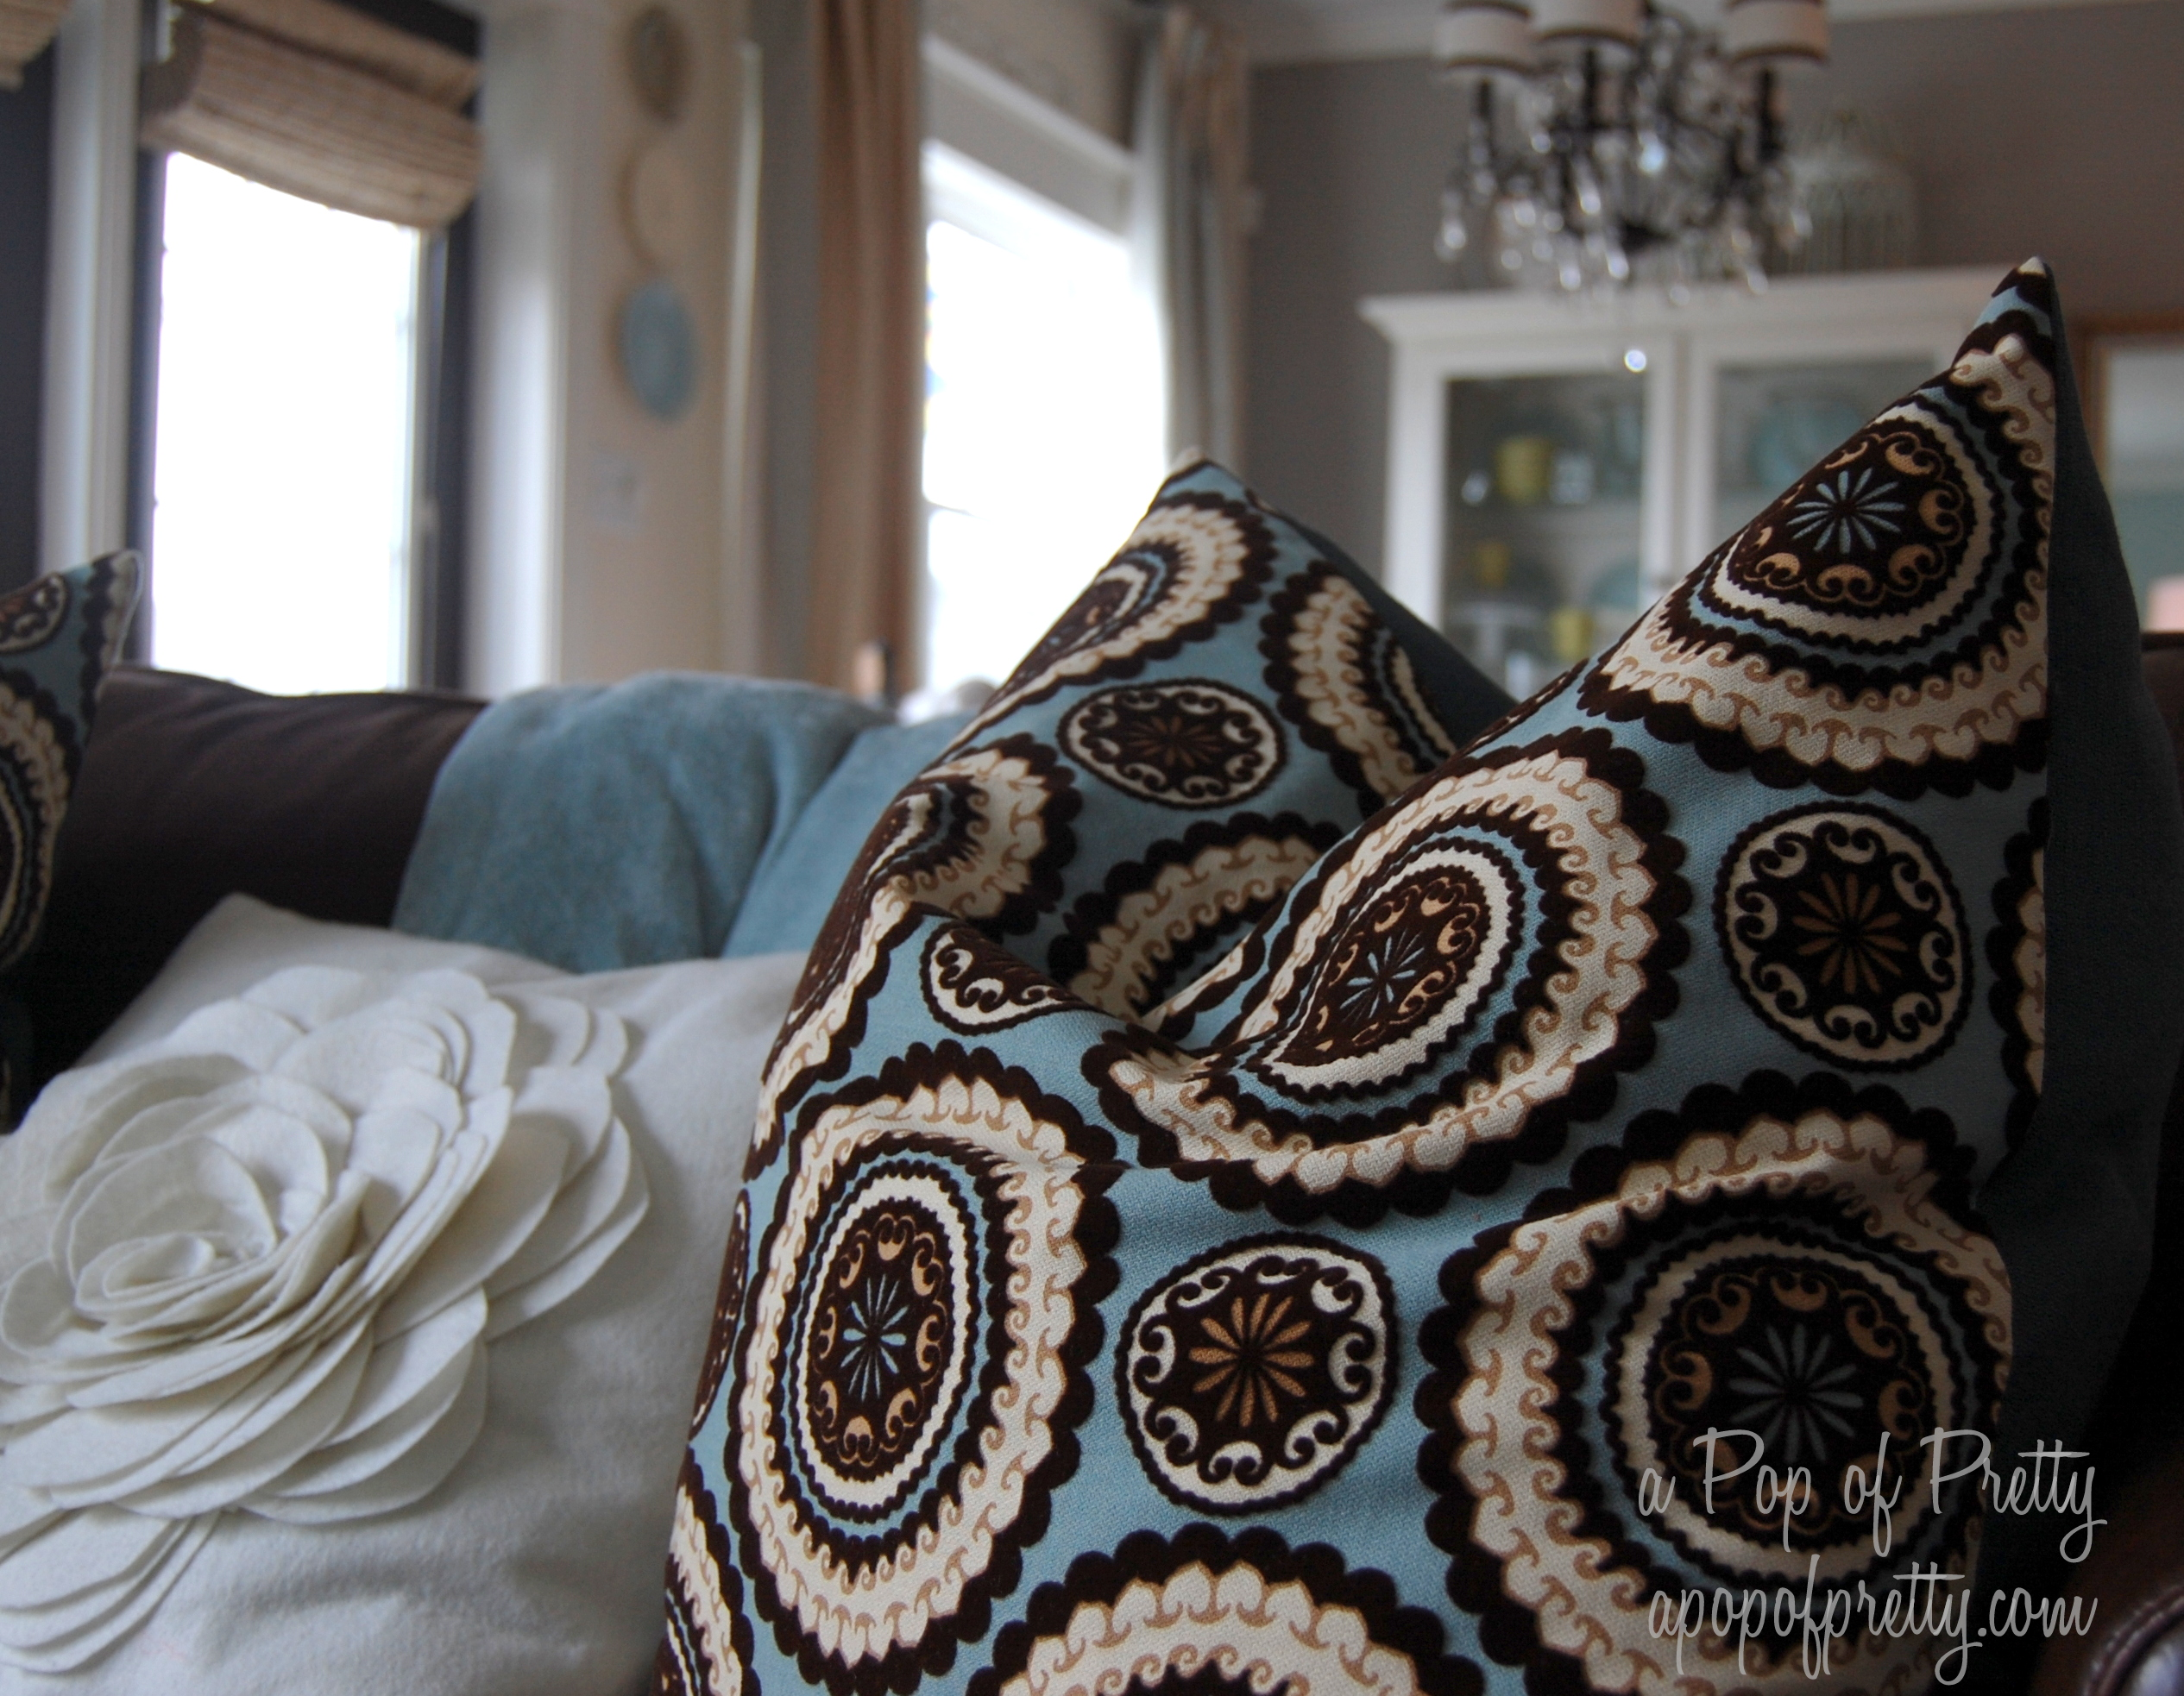 Blue and brown living room a pop of pretty blog canadian home decorating blog st john 39 s - Blue and brown living room ...